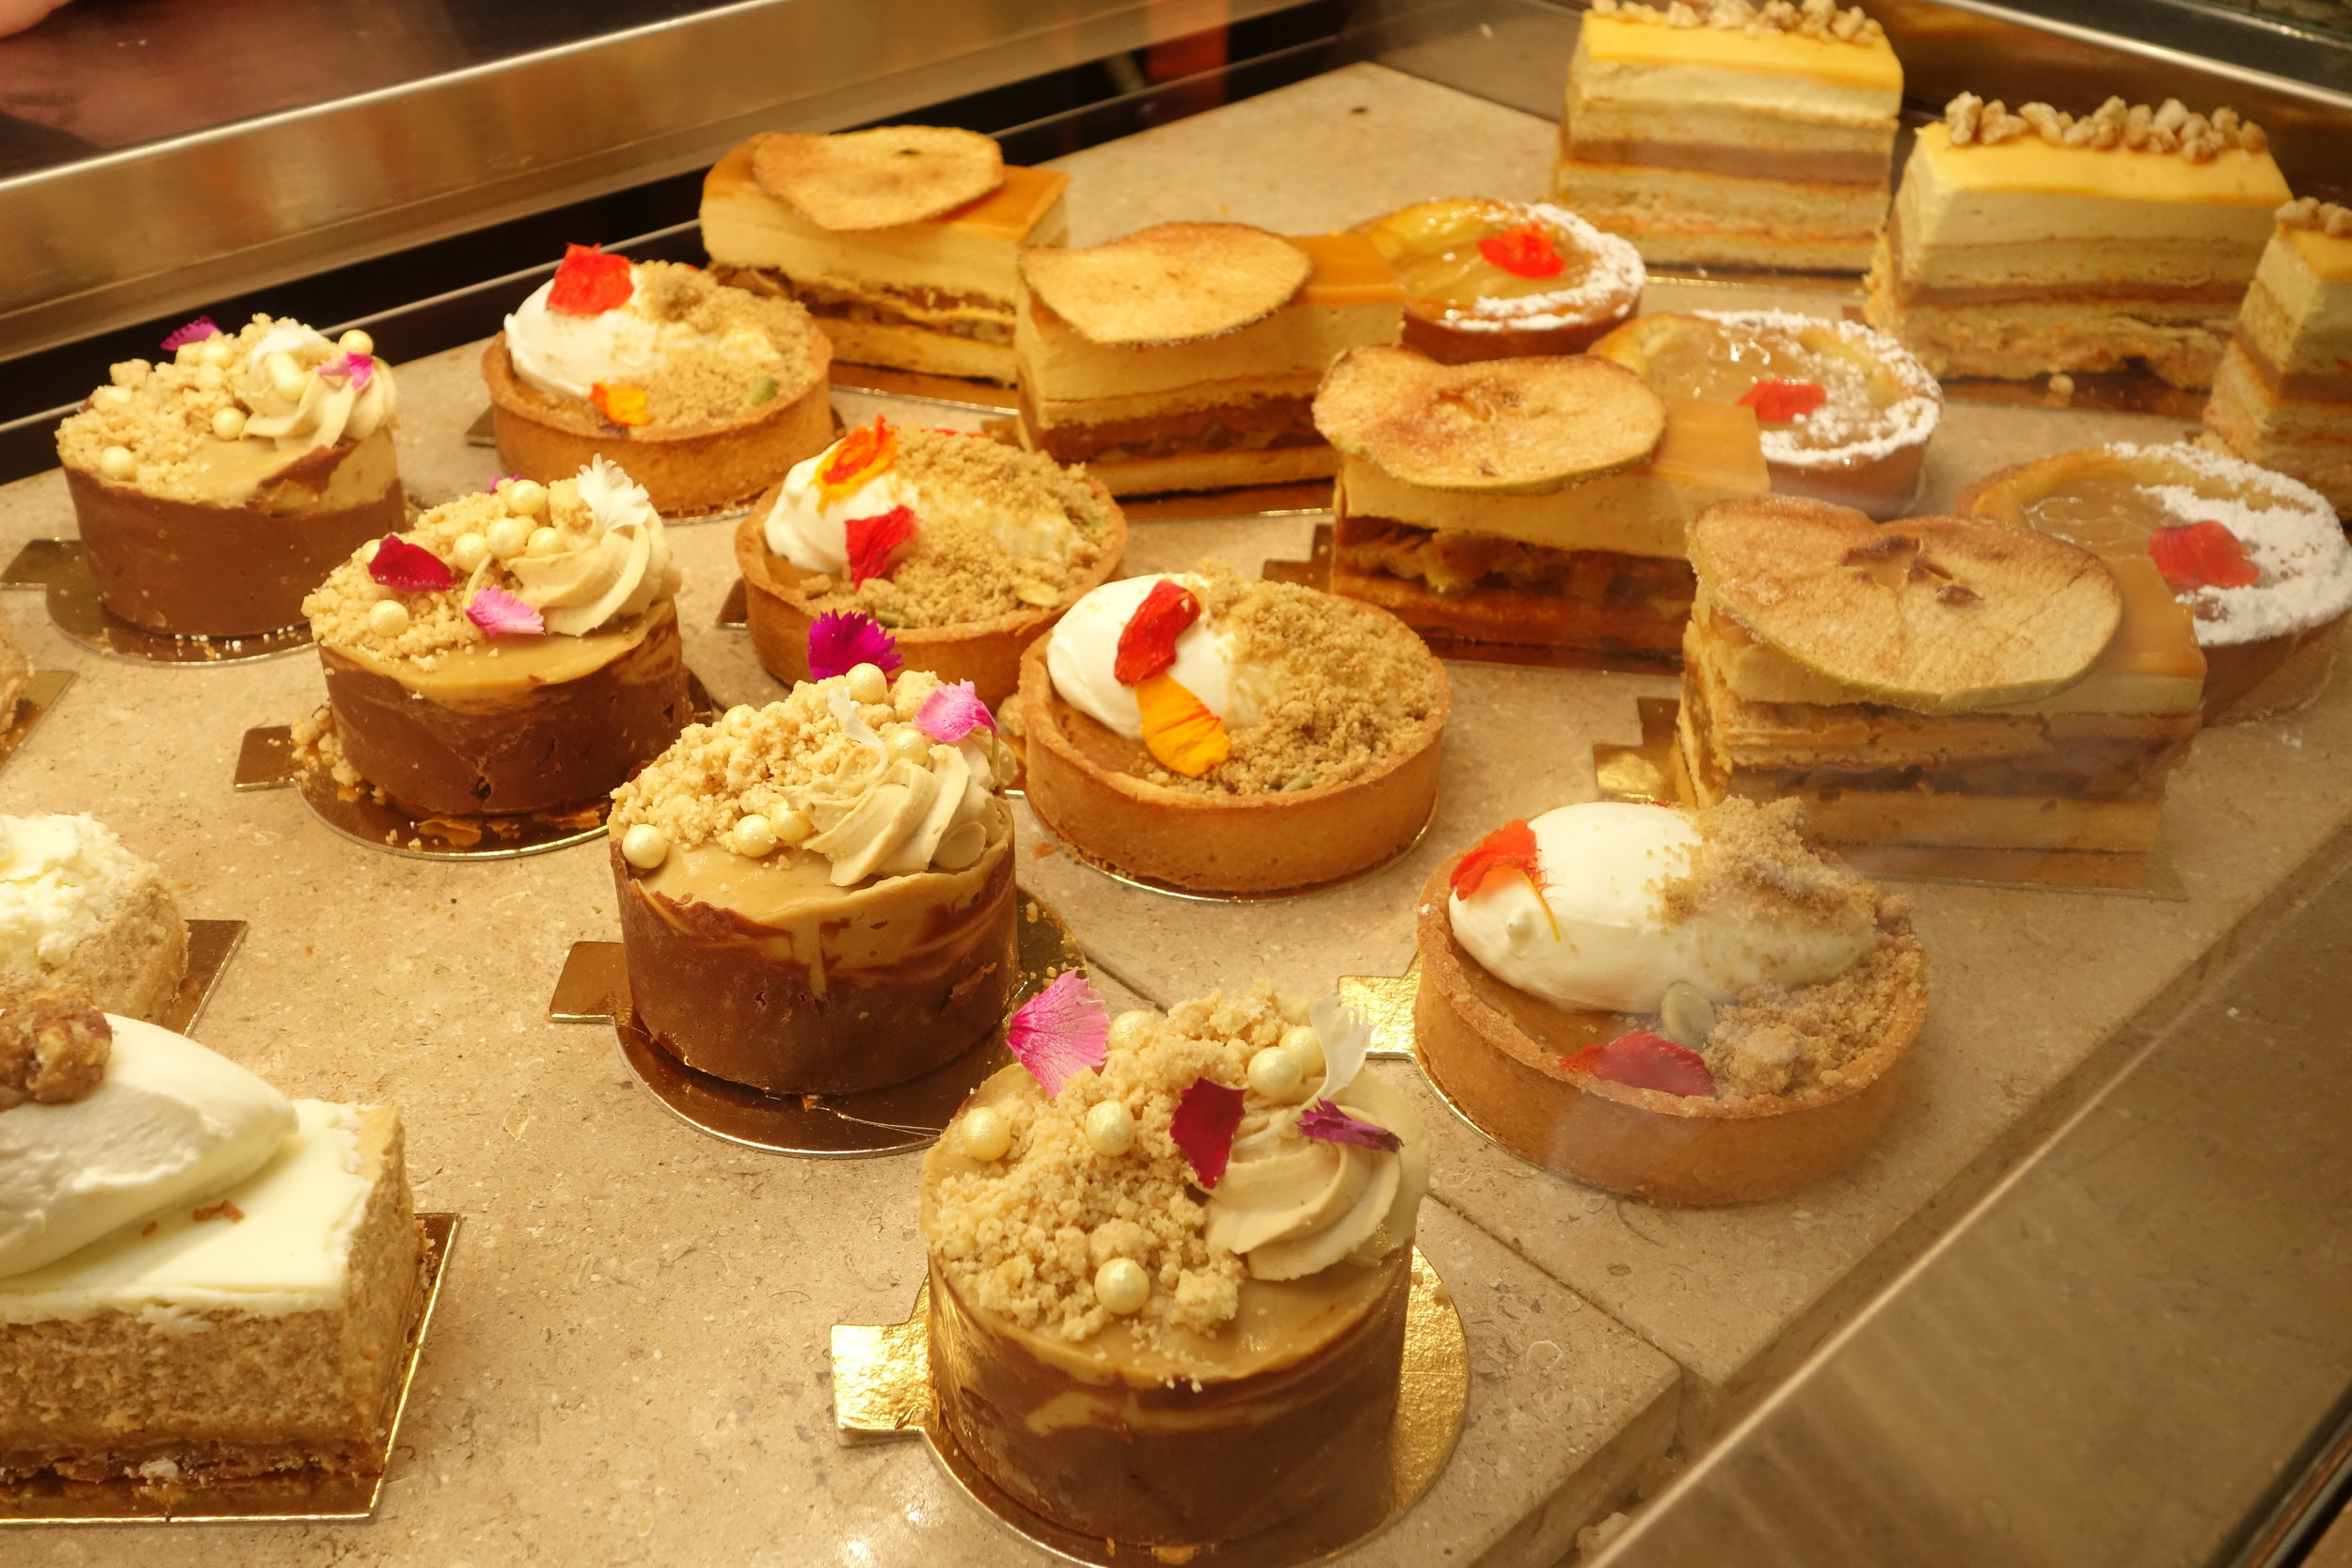 Desserts at Le Marais Bakery